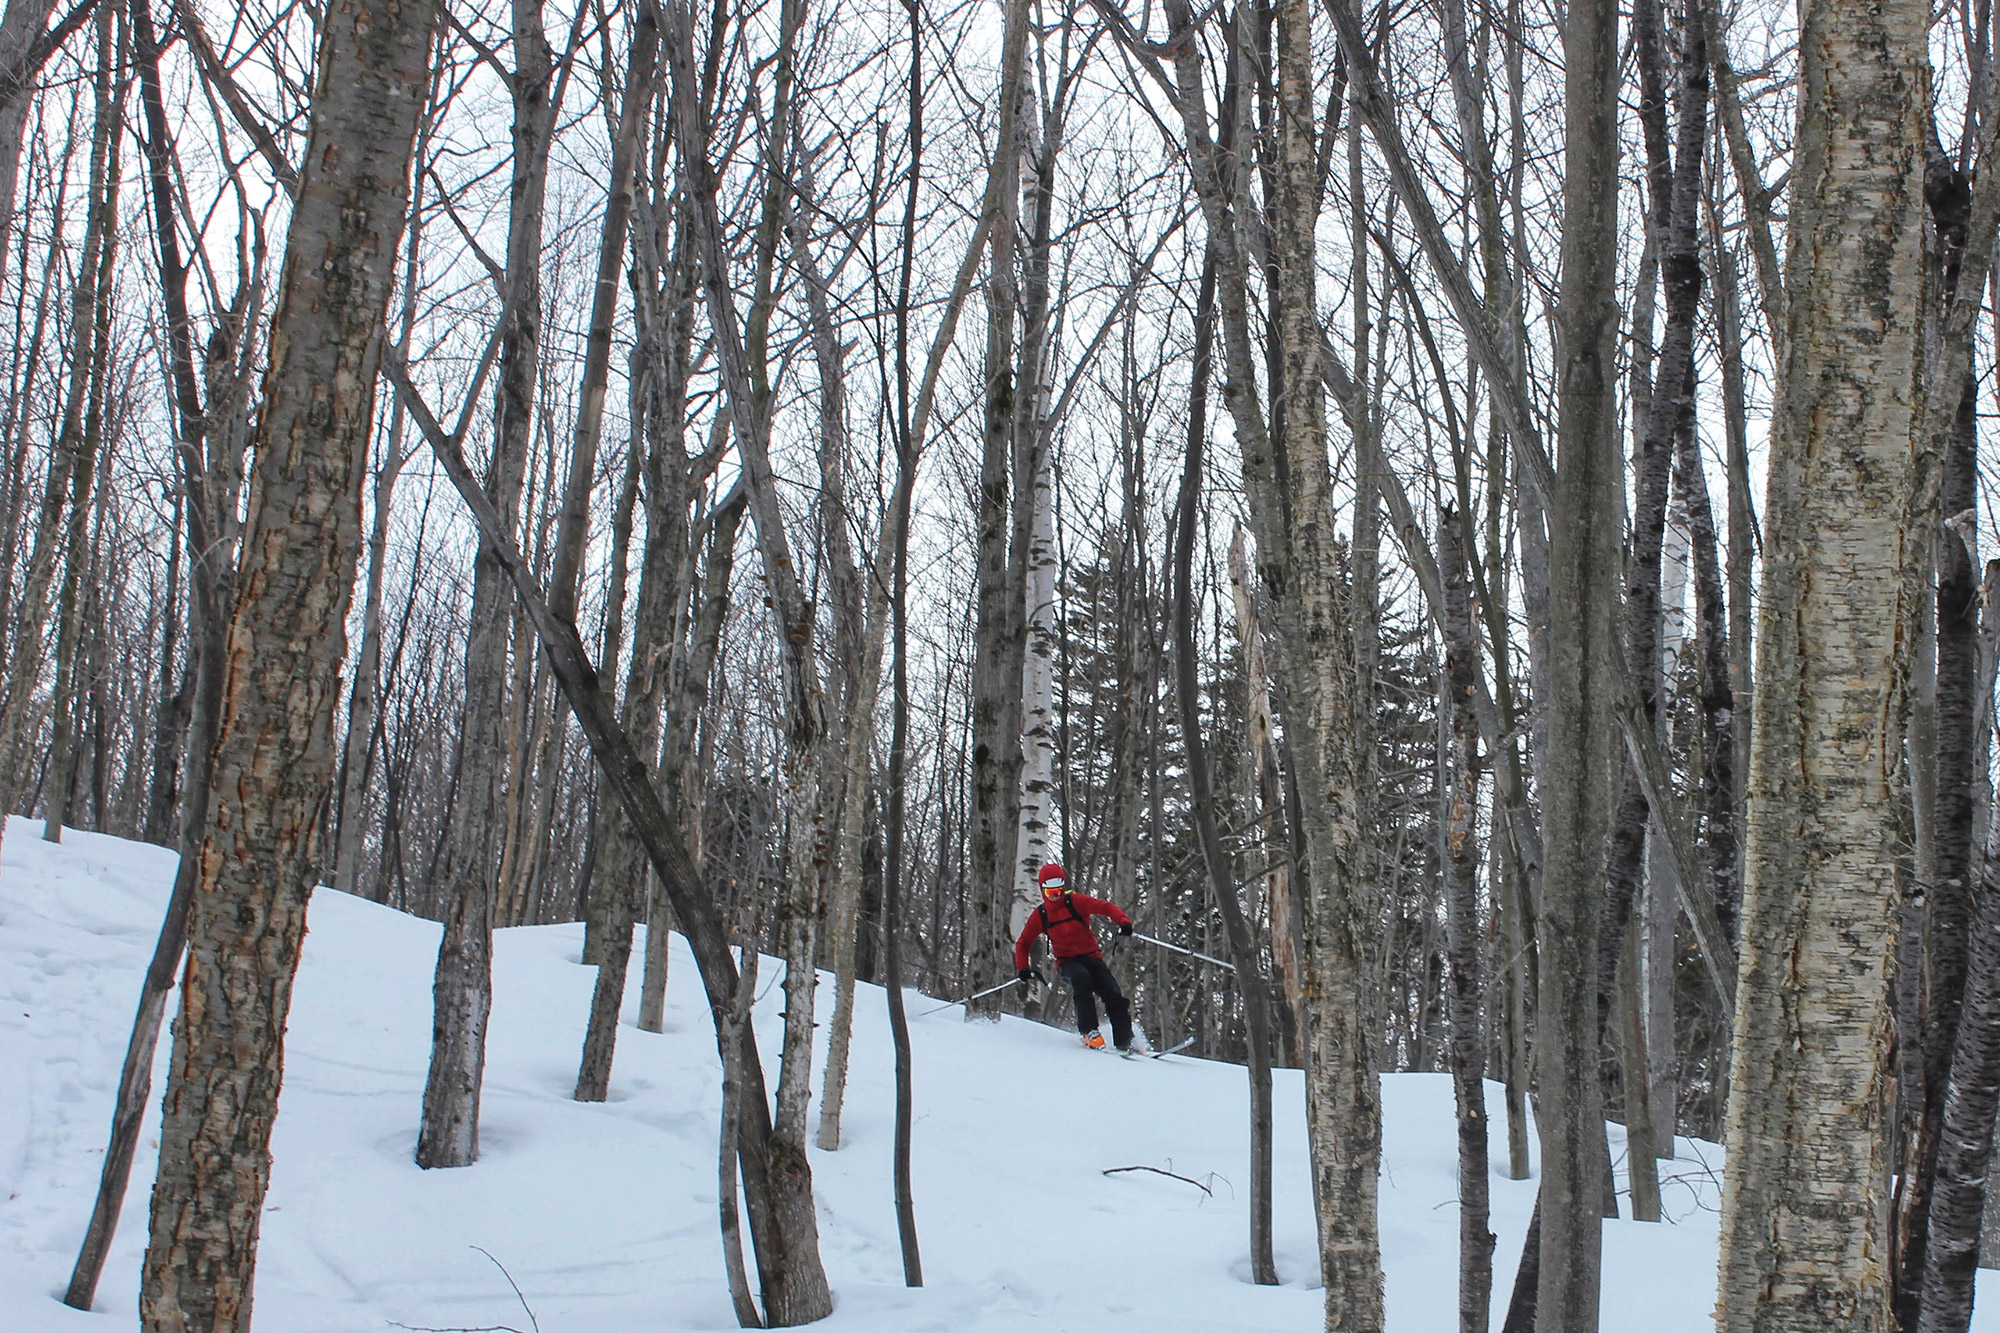 Skiing the trees on Bill Hill. | Credit: Tim Peck